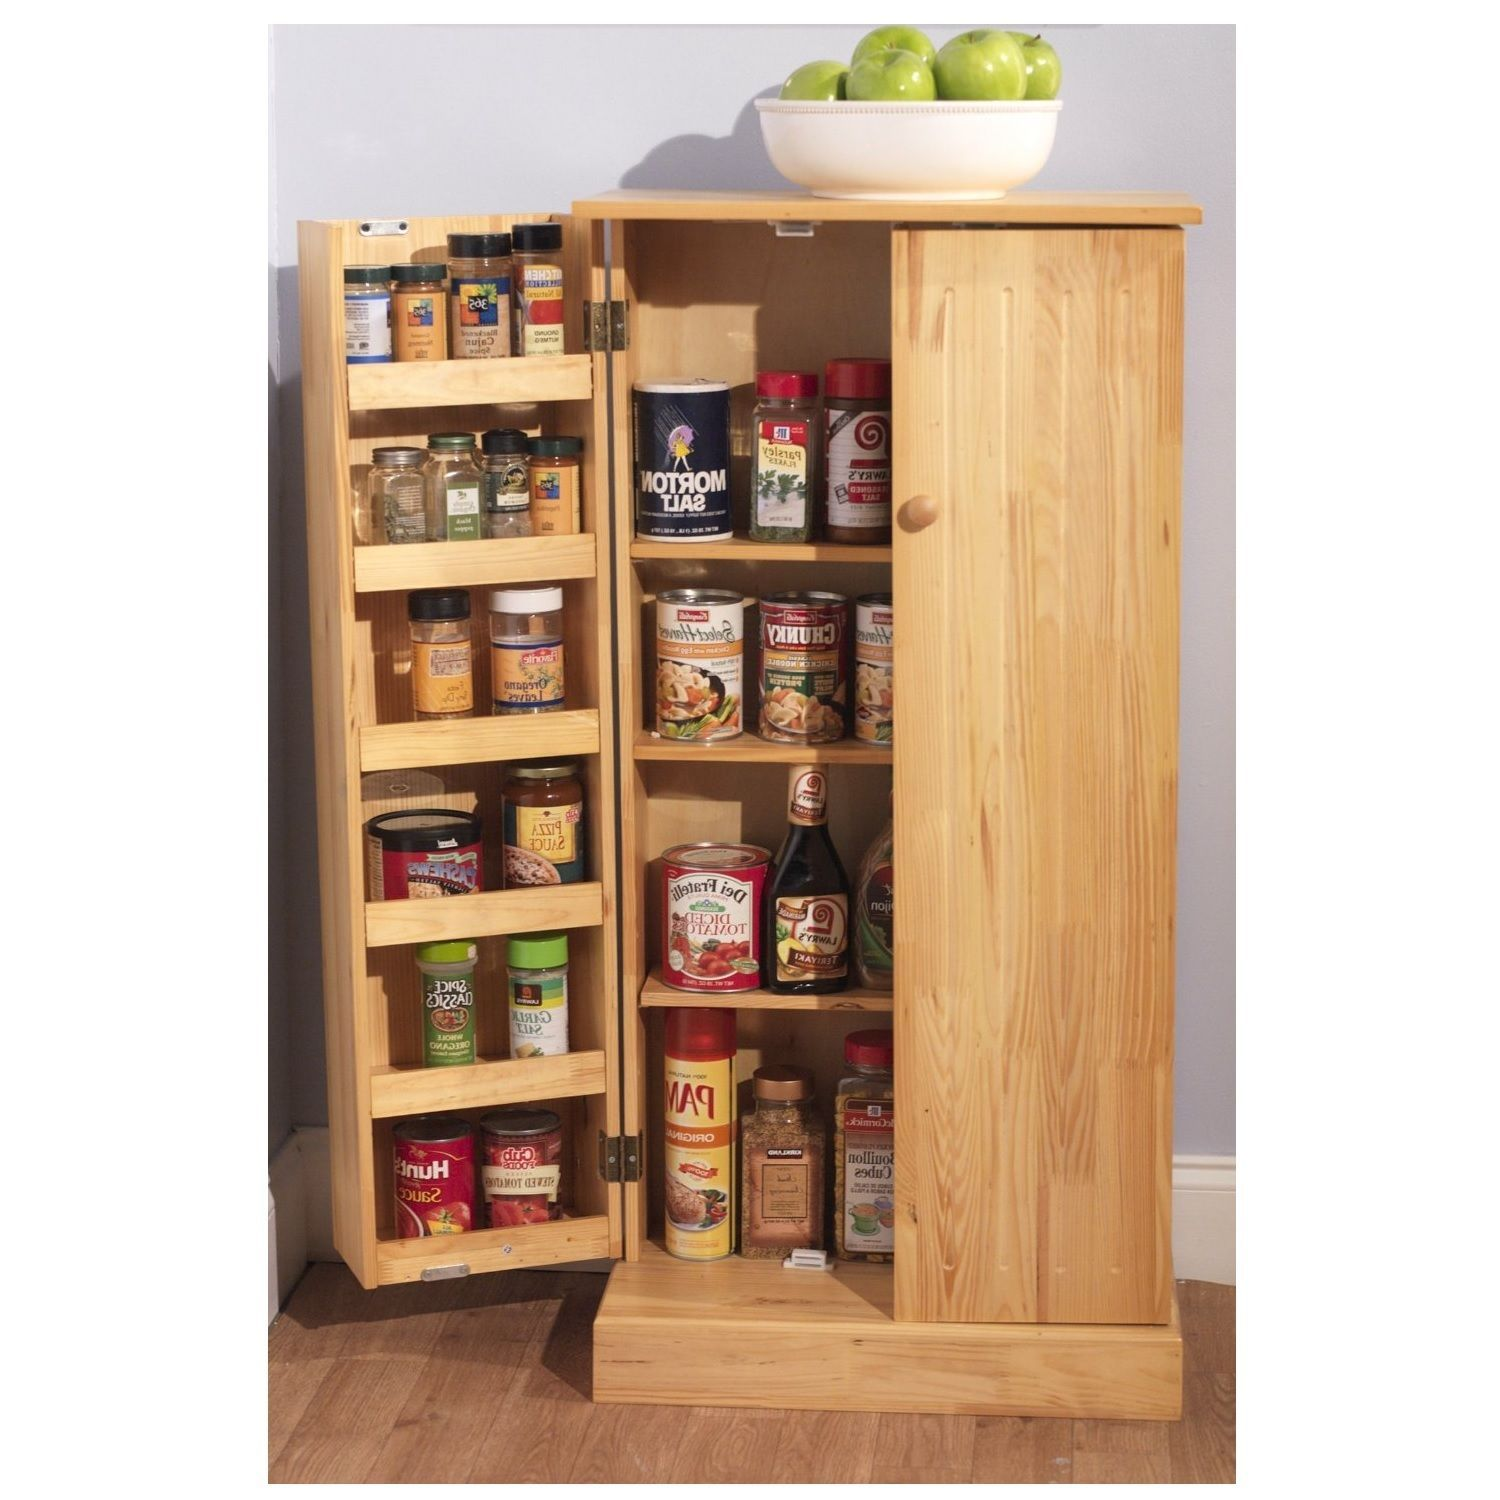 Kitchen storage cabinet pantry utility home wooden furniture bathroom organizer cabinets - Bathroom pantry cabinets ...